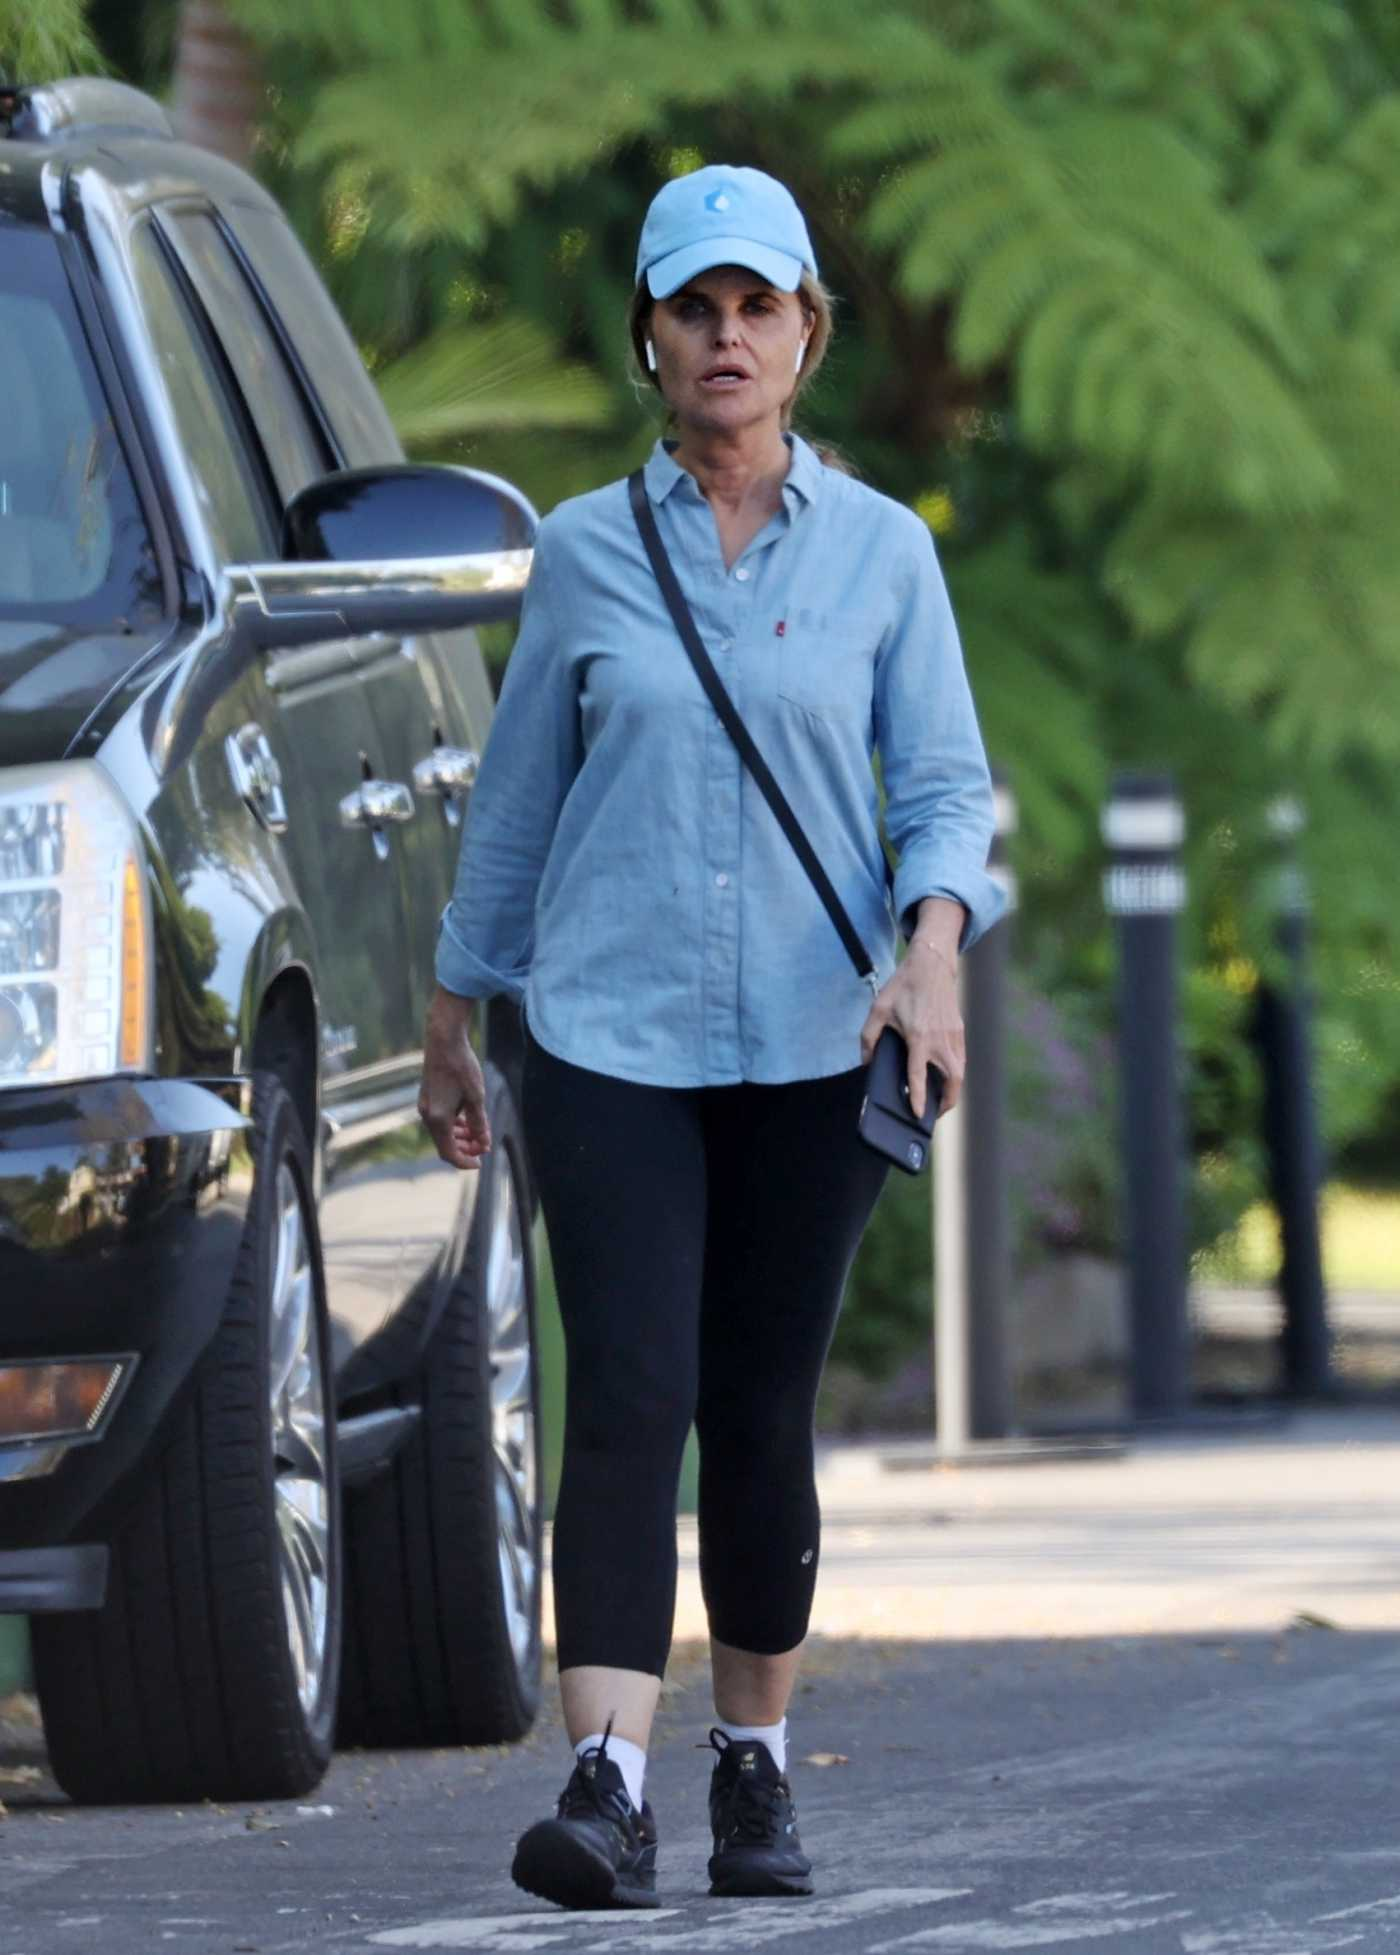 Maria Shriver in a Blue Cap Was Seen Out in Brentwood 04/28/2020